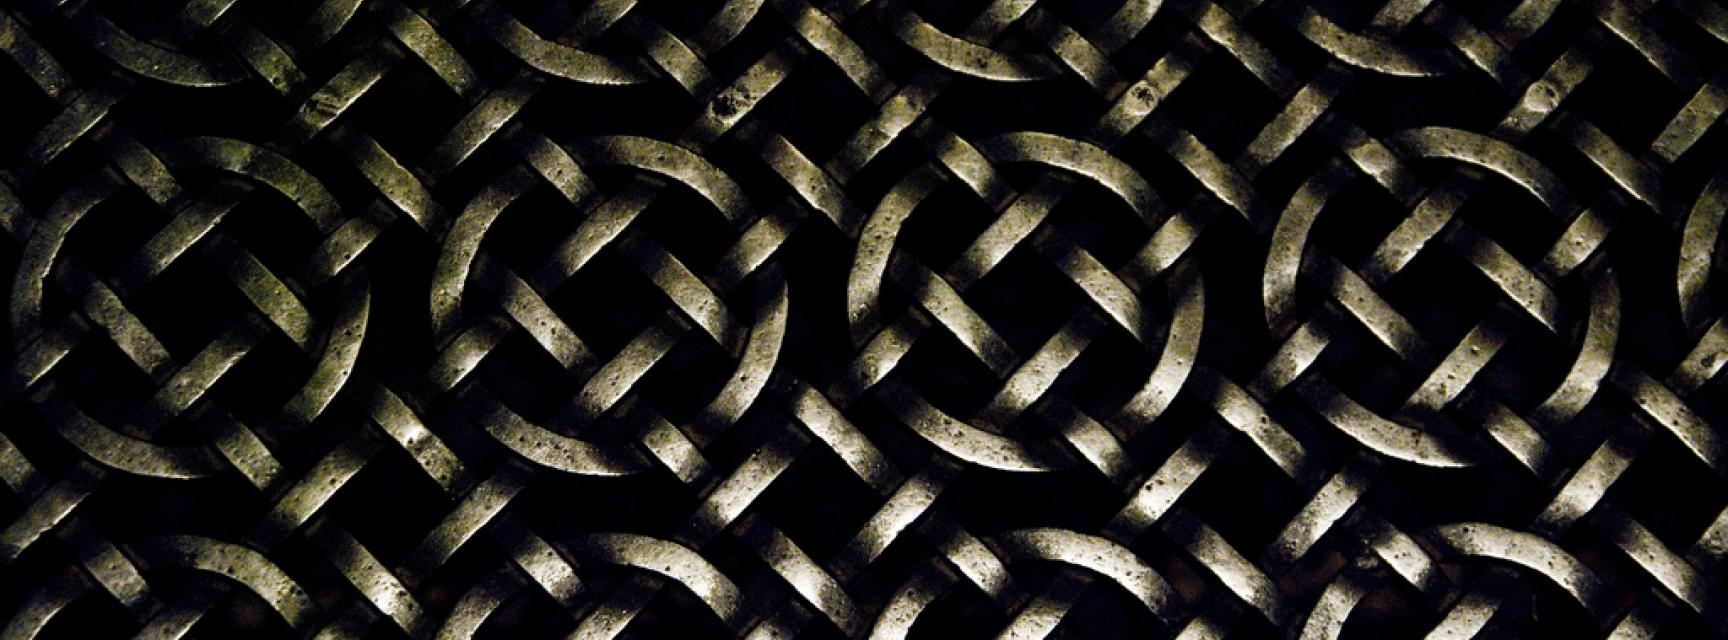 Pitt Rivers floor grate